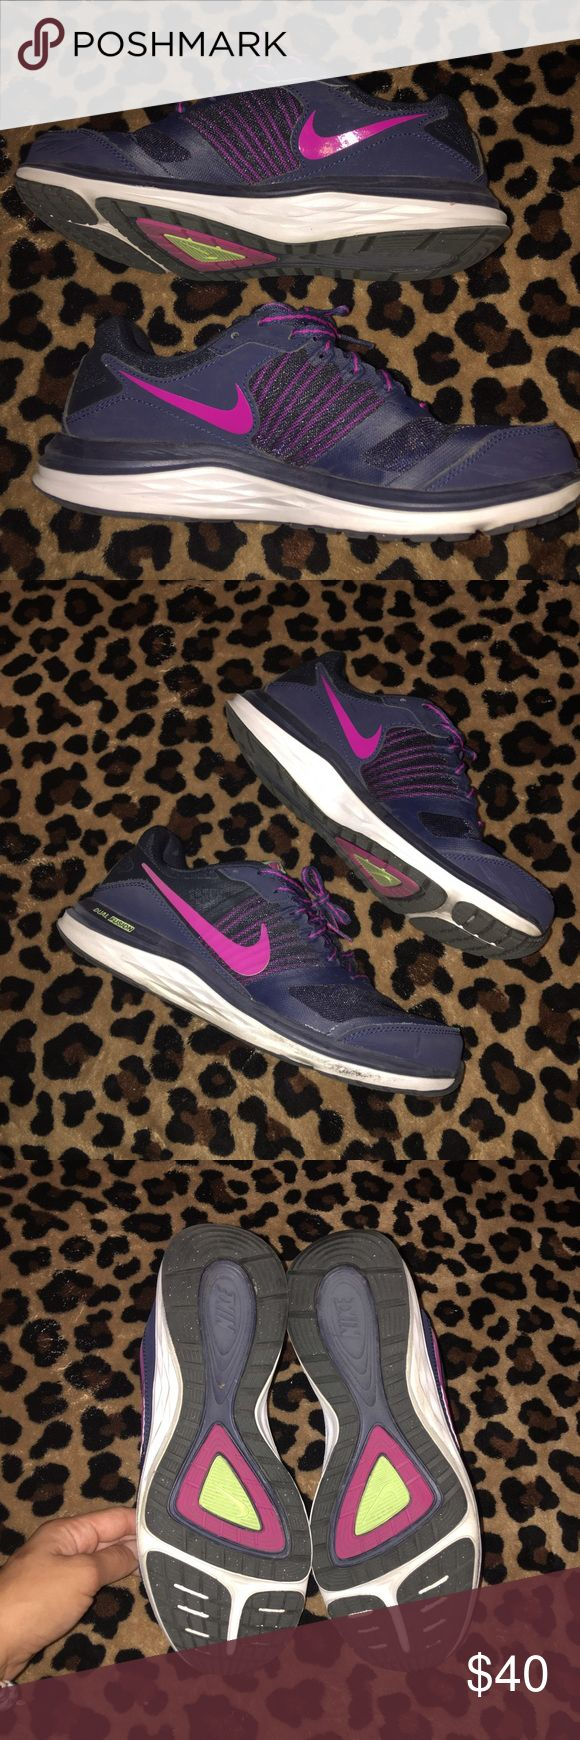 """Nike """"Dual Fusion X"""" shoes These have only been worn a couple of times!! In amazing condition! Super cute & stylish! Perfect for working out or just every day use! They are super comfy & simply gorgeous! 💖💕 Nike Shoes Sneakers"""